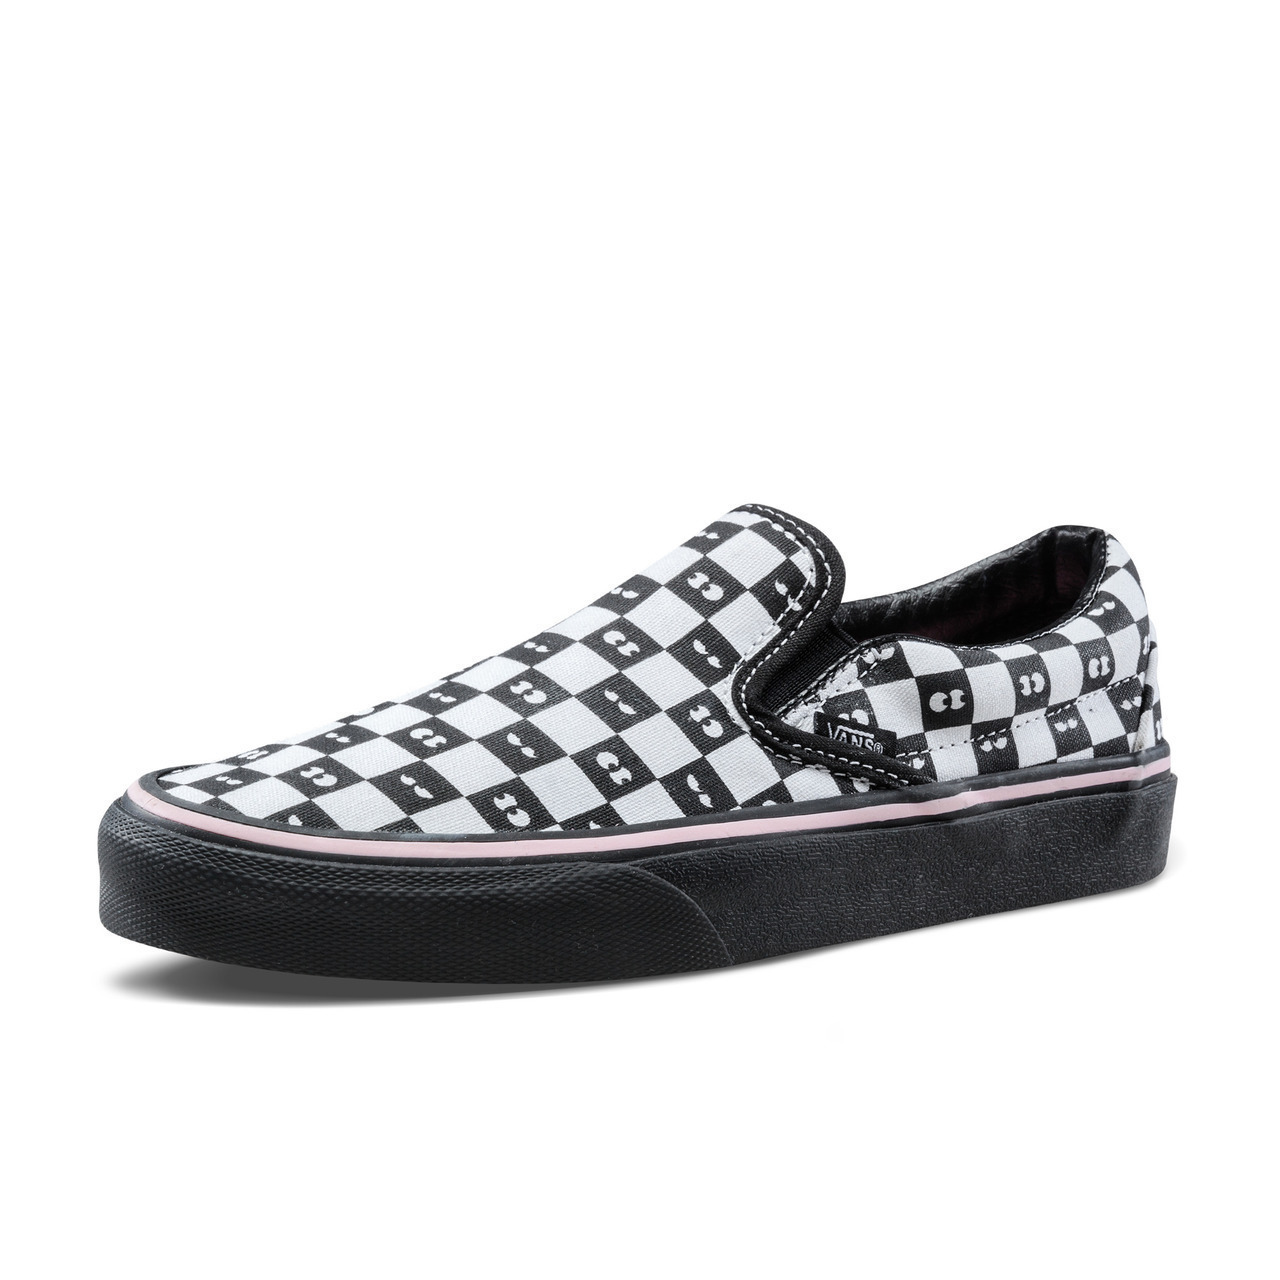 725e247c0f06 Original New Arrival Vans Womens CLASSIC SLIP ON Low top Skateboarding Shoes  Sneakers Canvas Comfortable Outdoor VN0A38F7QD0-in Skateboarding from  Sports ...